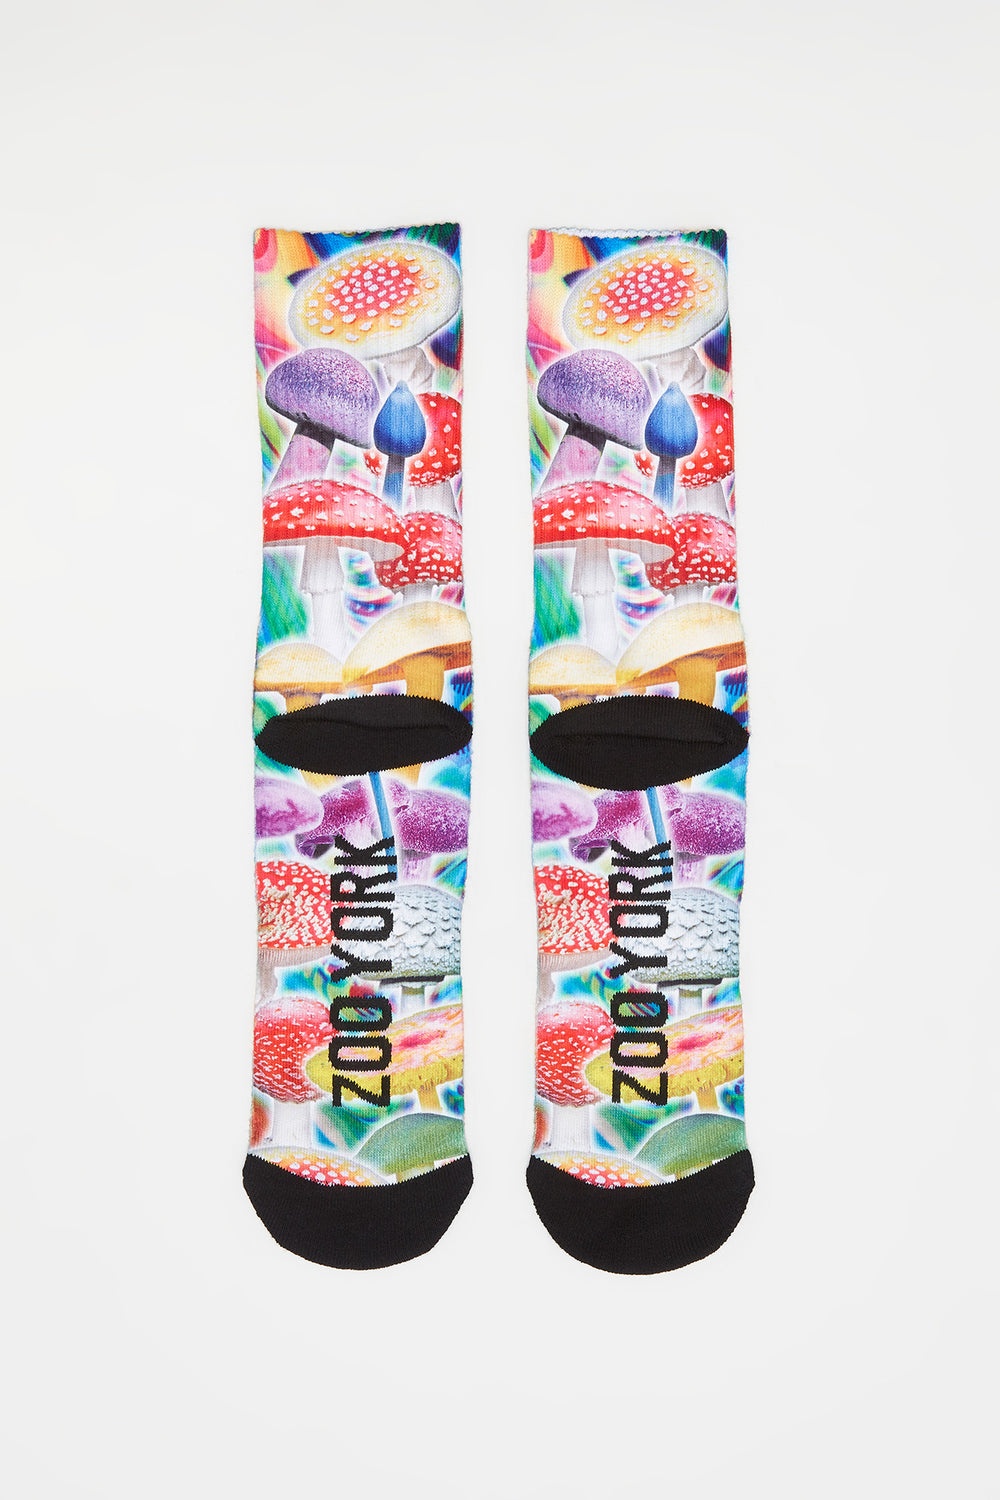 Zoo York Mens Sublimated Graphic Crew Socks Multi